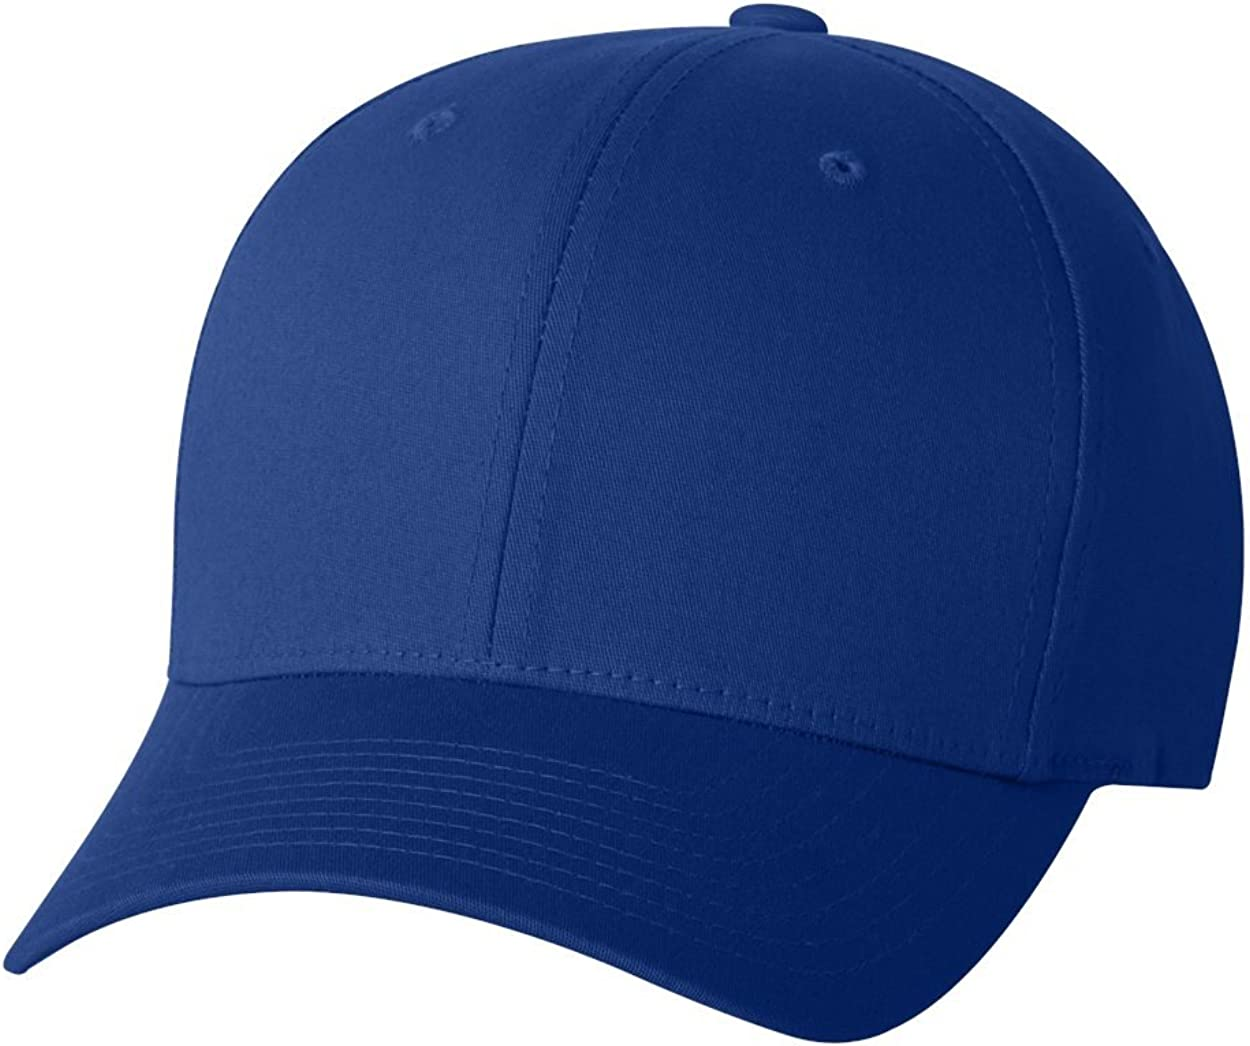 S//M 5001 ROYAL Yupoong Flexfit 6-Panel Structured Mid-Profile Cap